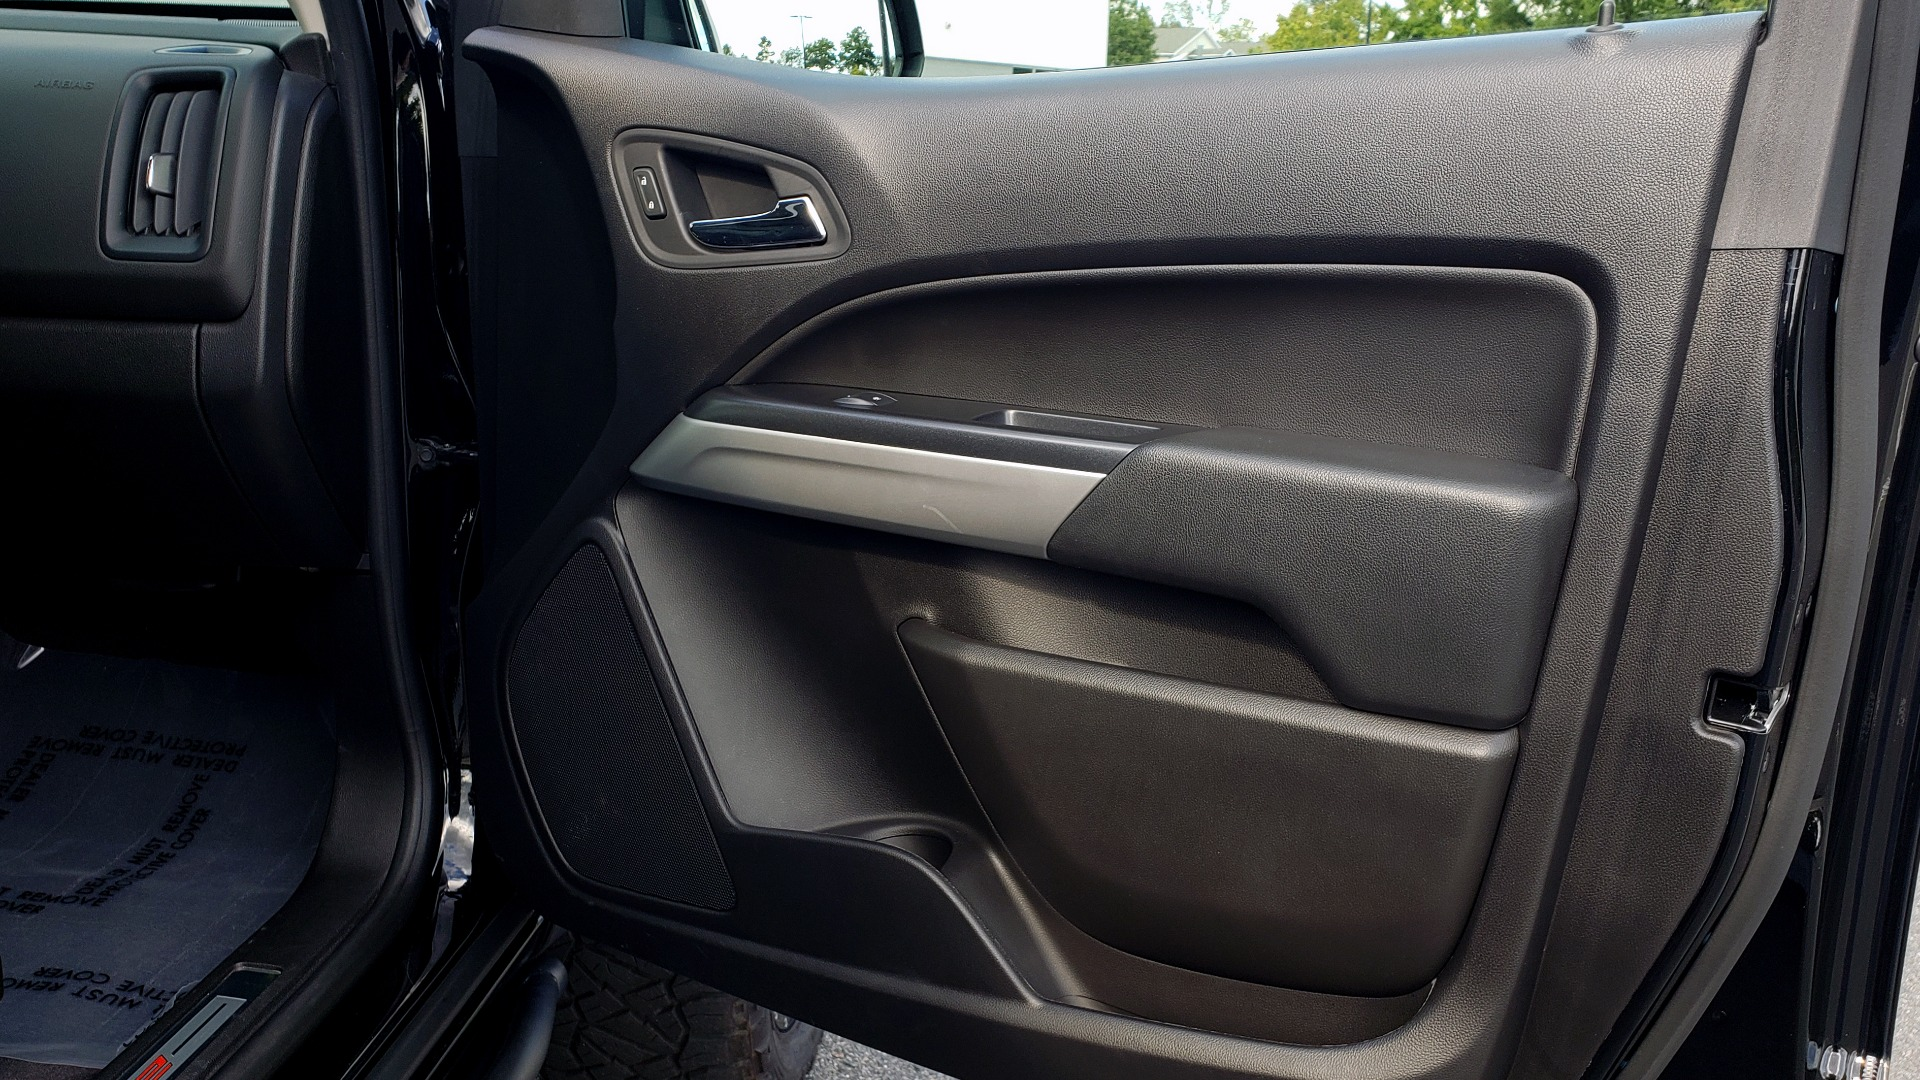 Used 2019 Chevrolet COLORADO 4WD ZR2 / 3.6L V6 / 8-SPD AUTO / CREWCAB / LEATHER / BOSE / REARVIEW for sale $41,995 at Formula Imports in Charlotte NC 28227 67